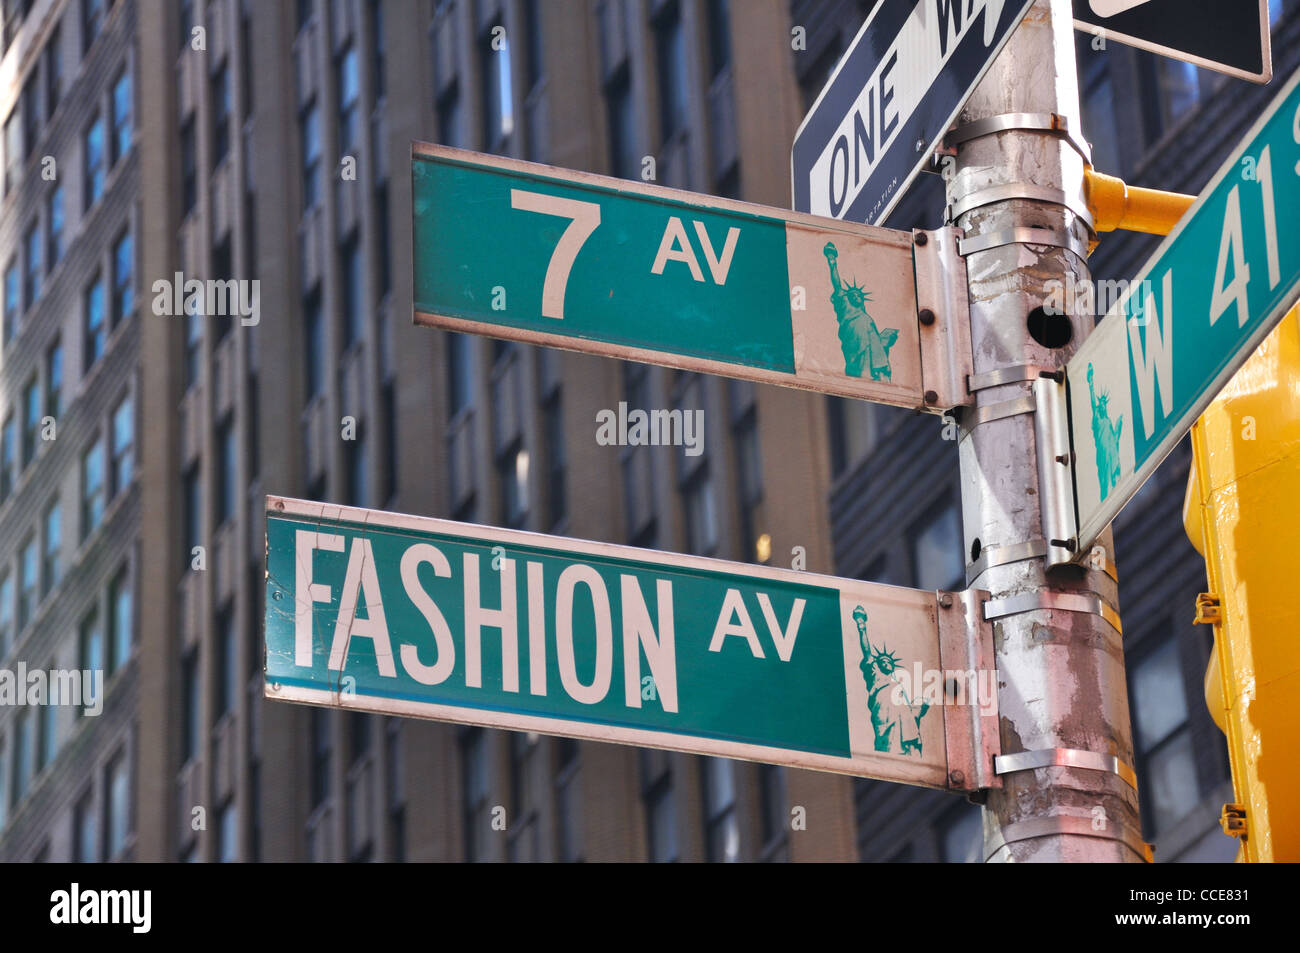 Fashion Avenue and 7th Avenue street signs, New York, USA ...